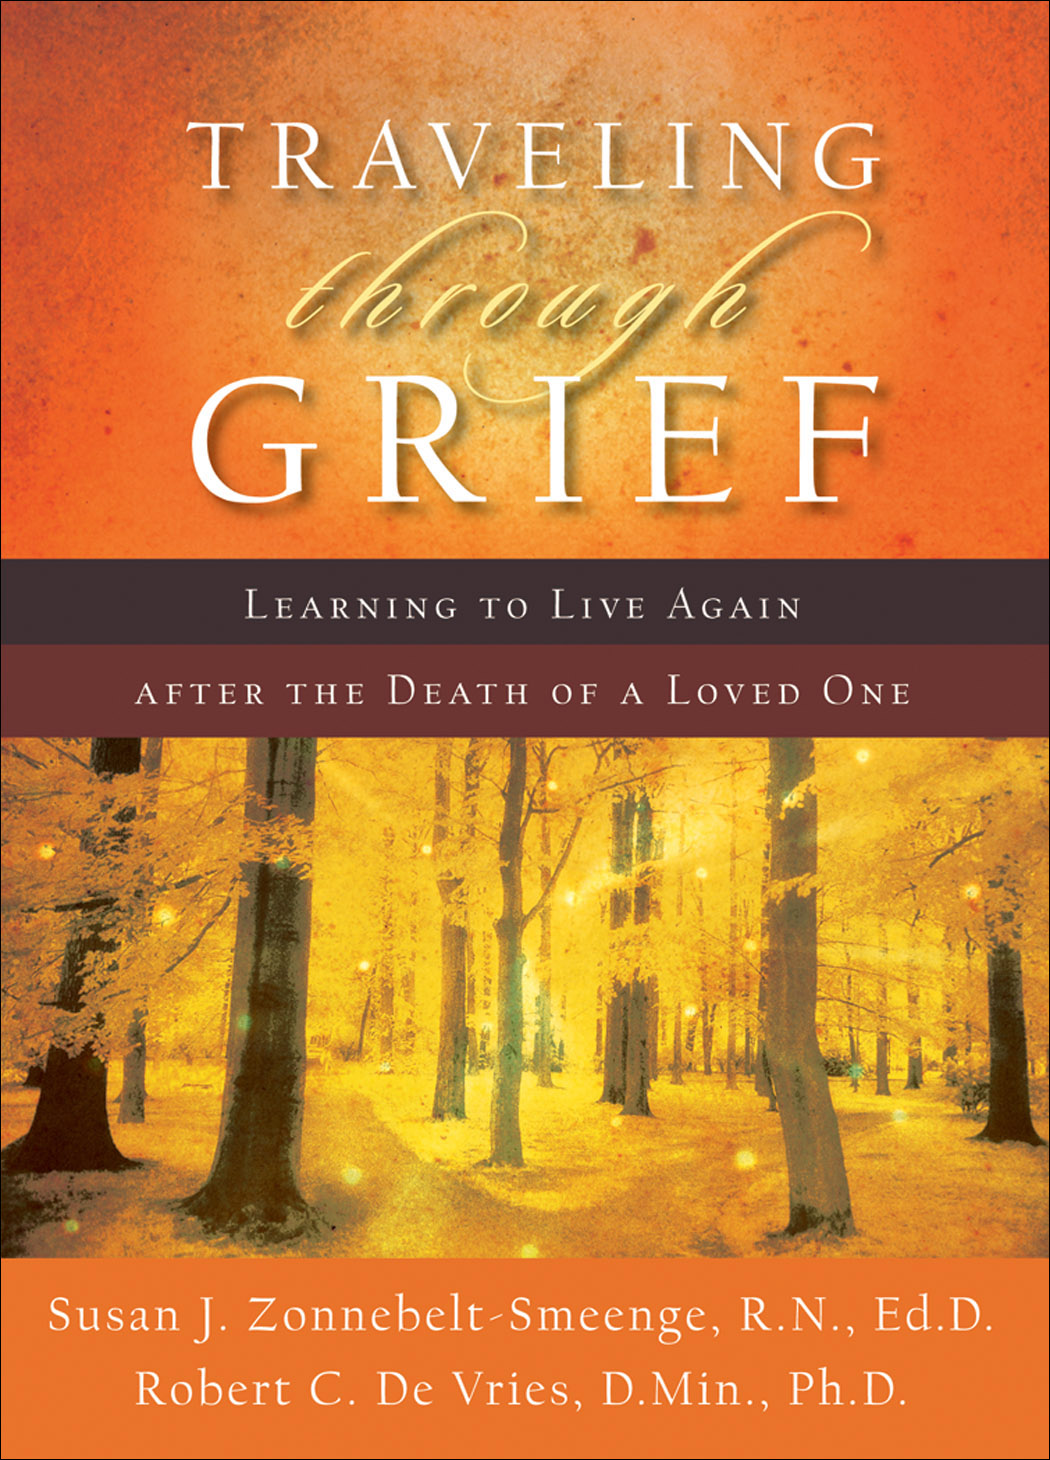 Traveling through grief : learning to live again after the death of a loved one